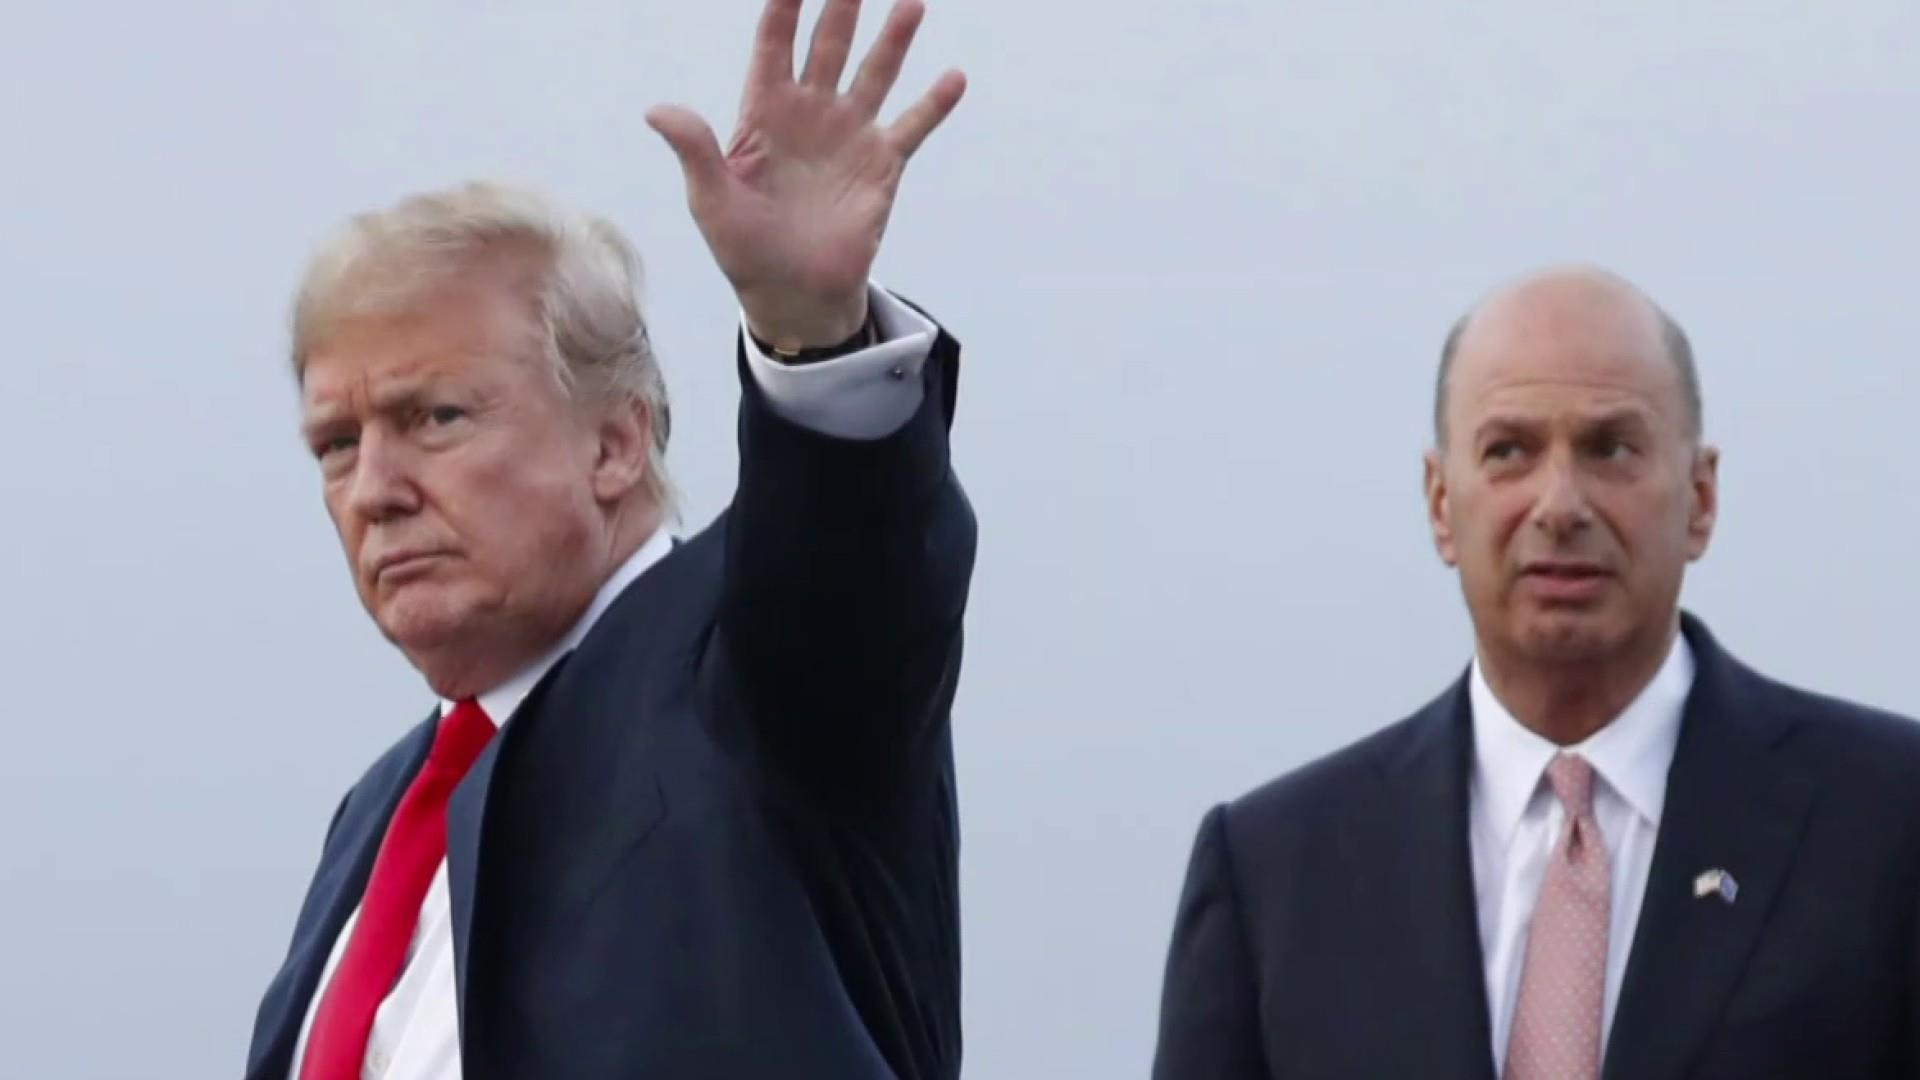 Facing new bribery evidence, Trump claims he 'doesn't know' the donor he appointed